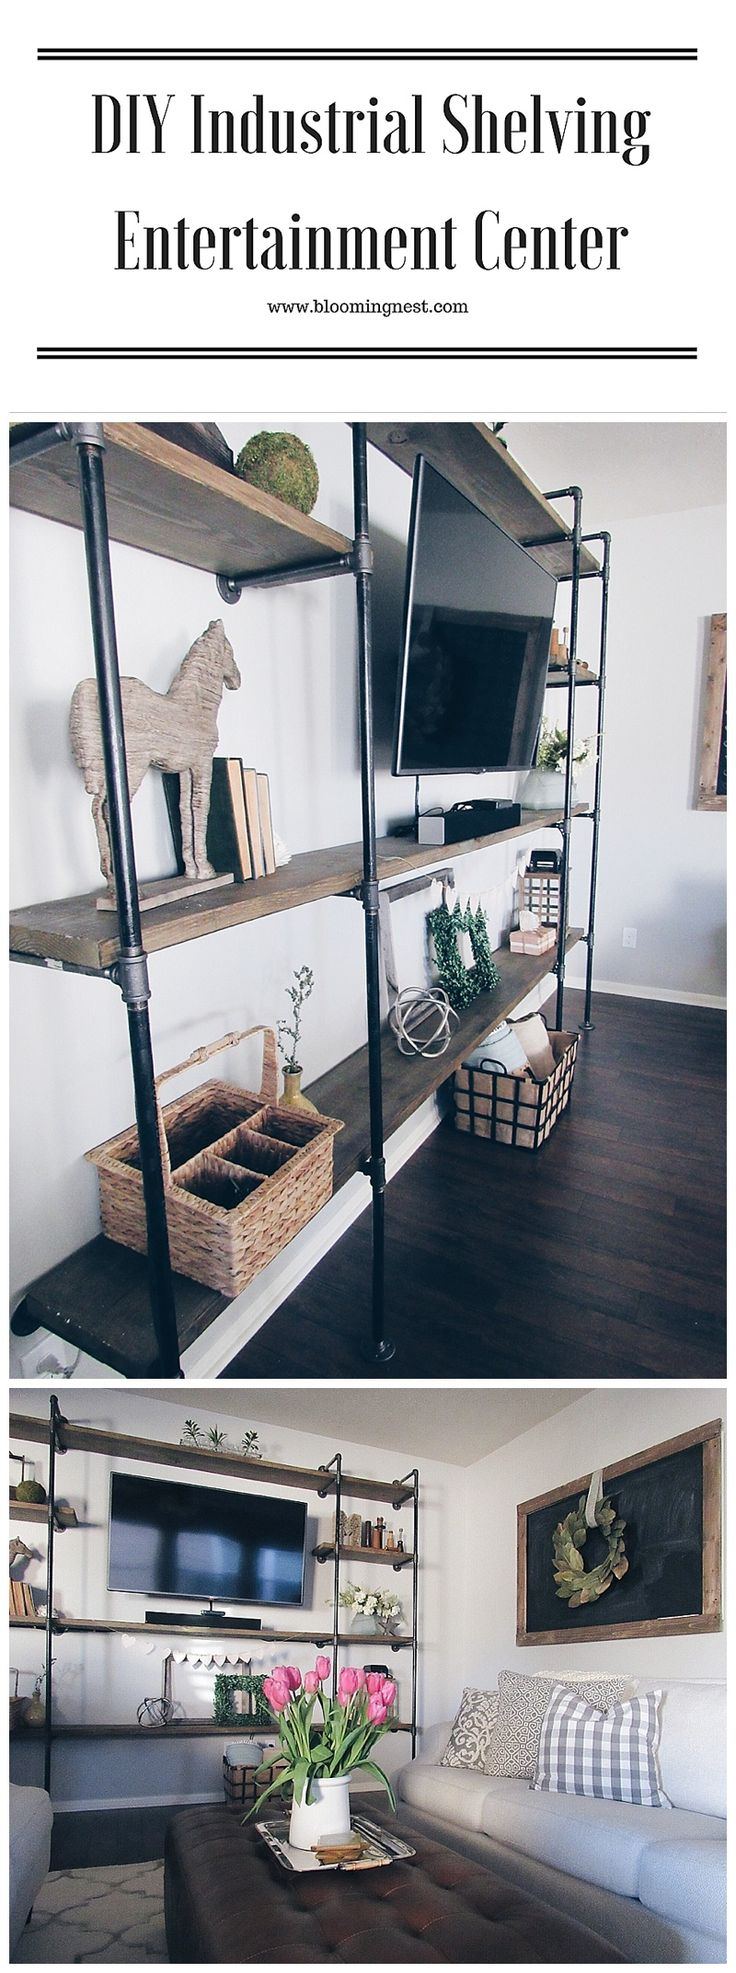 DIY Industrial Shelving Entertainment Center